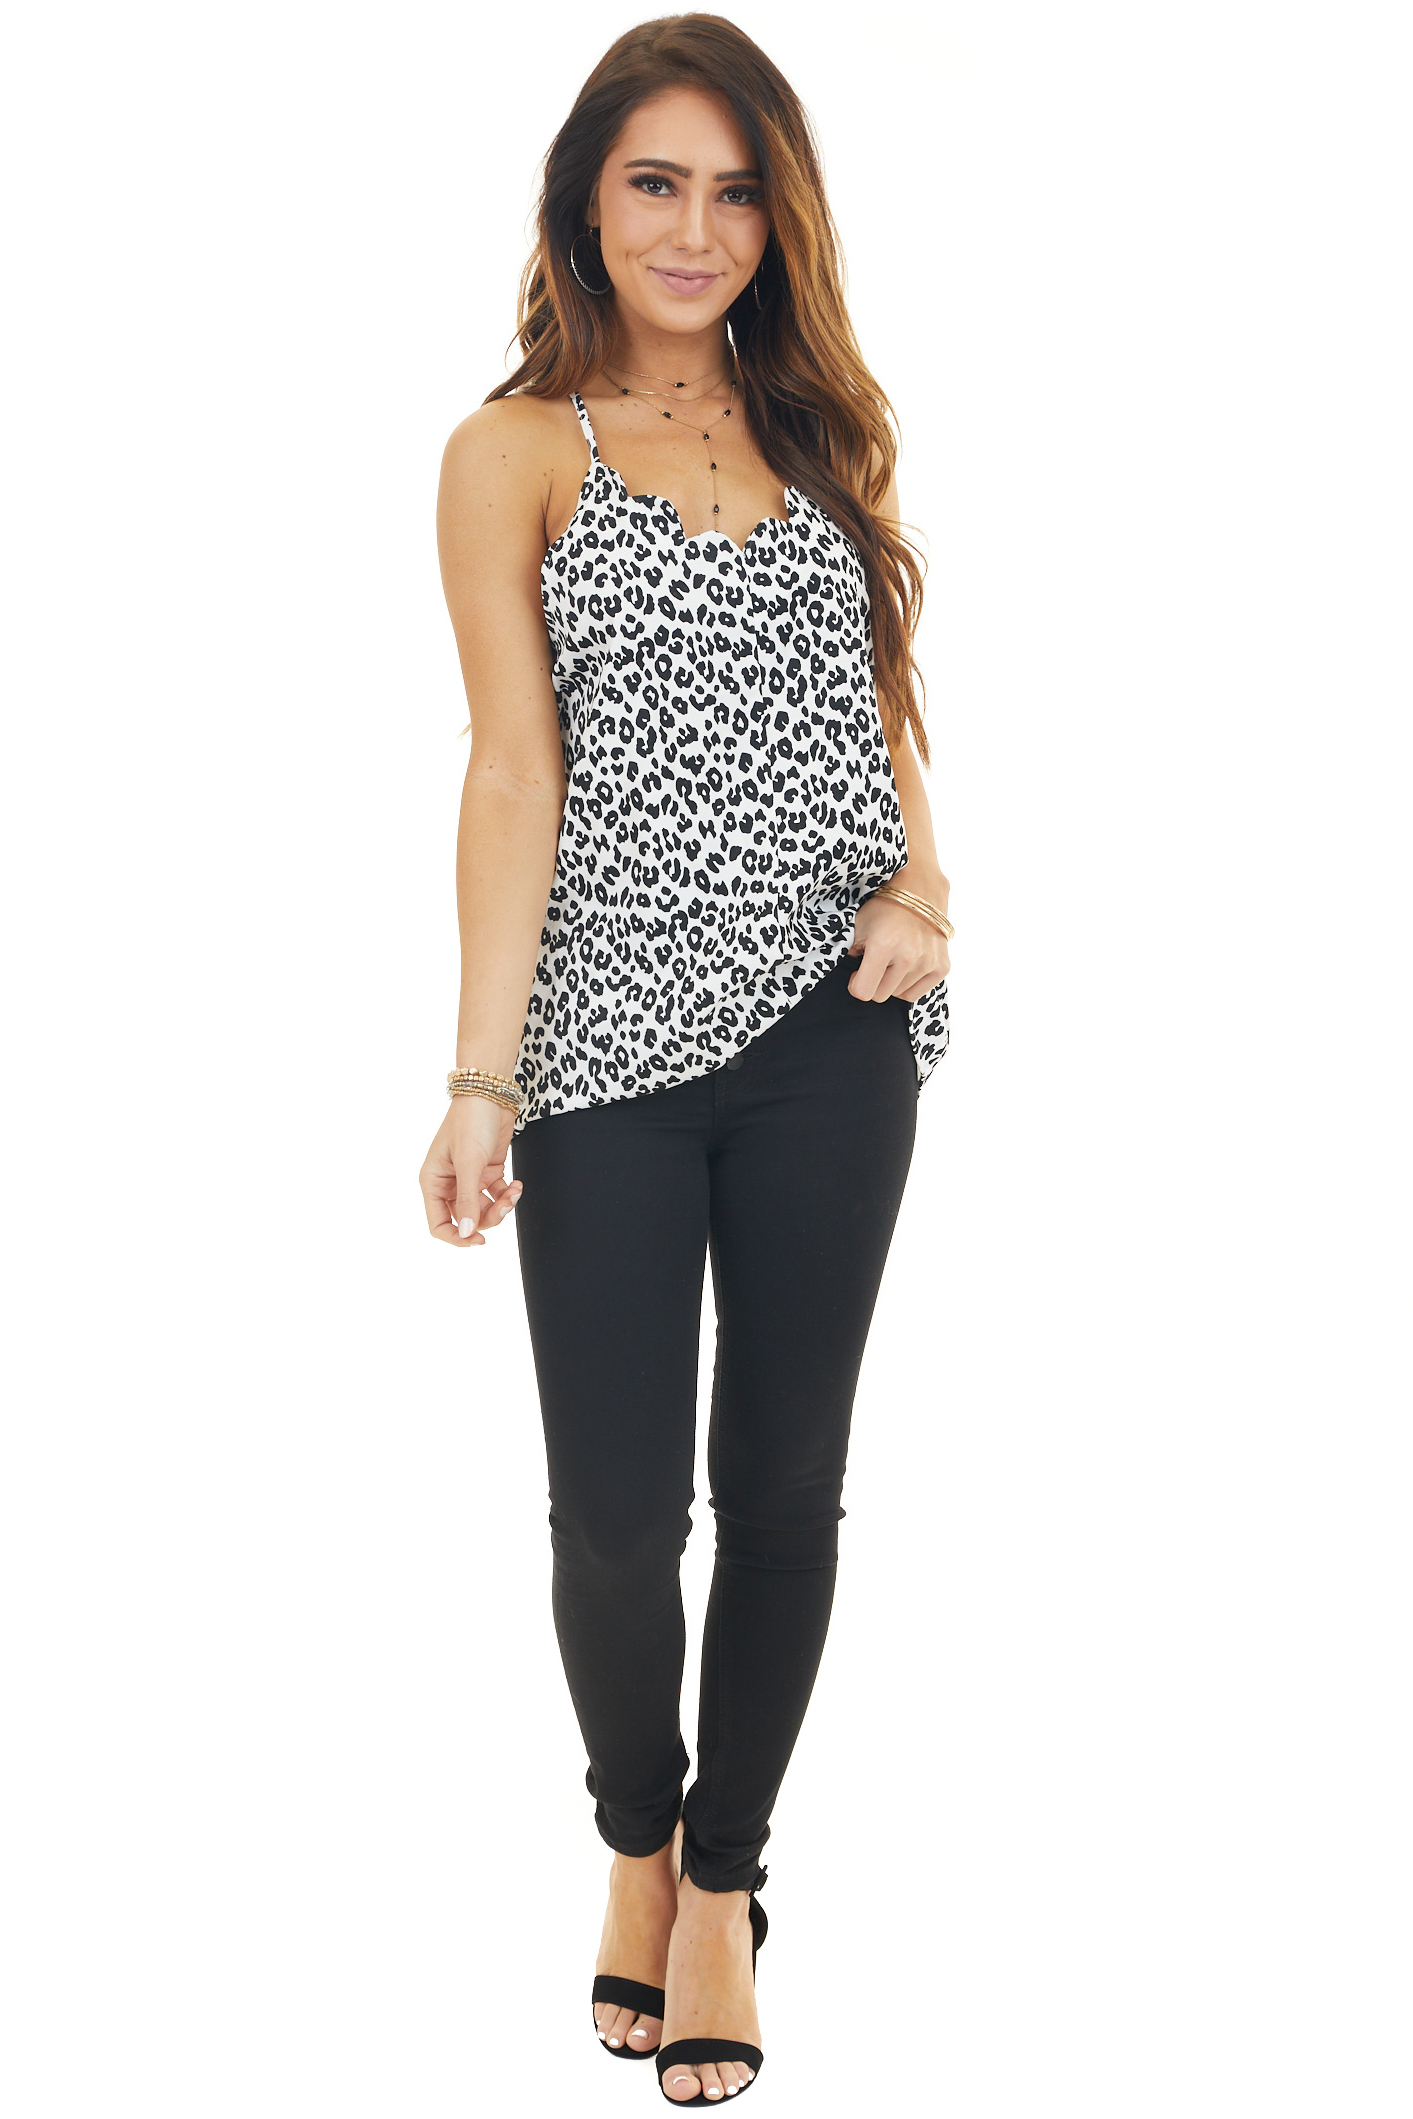 Black and White Sleeveless Woven Top with Scalloped Neckline